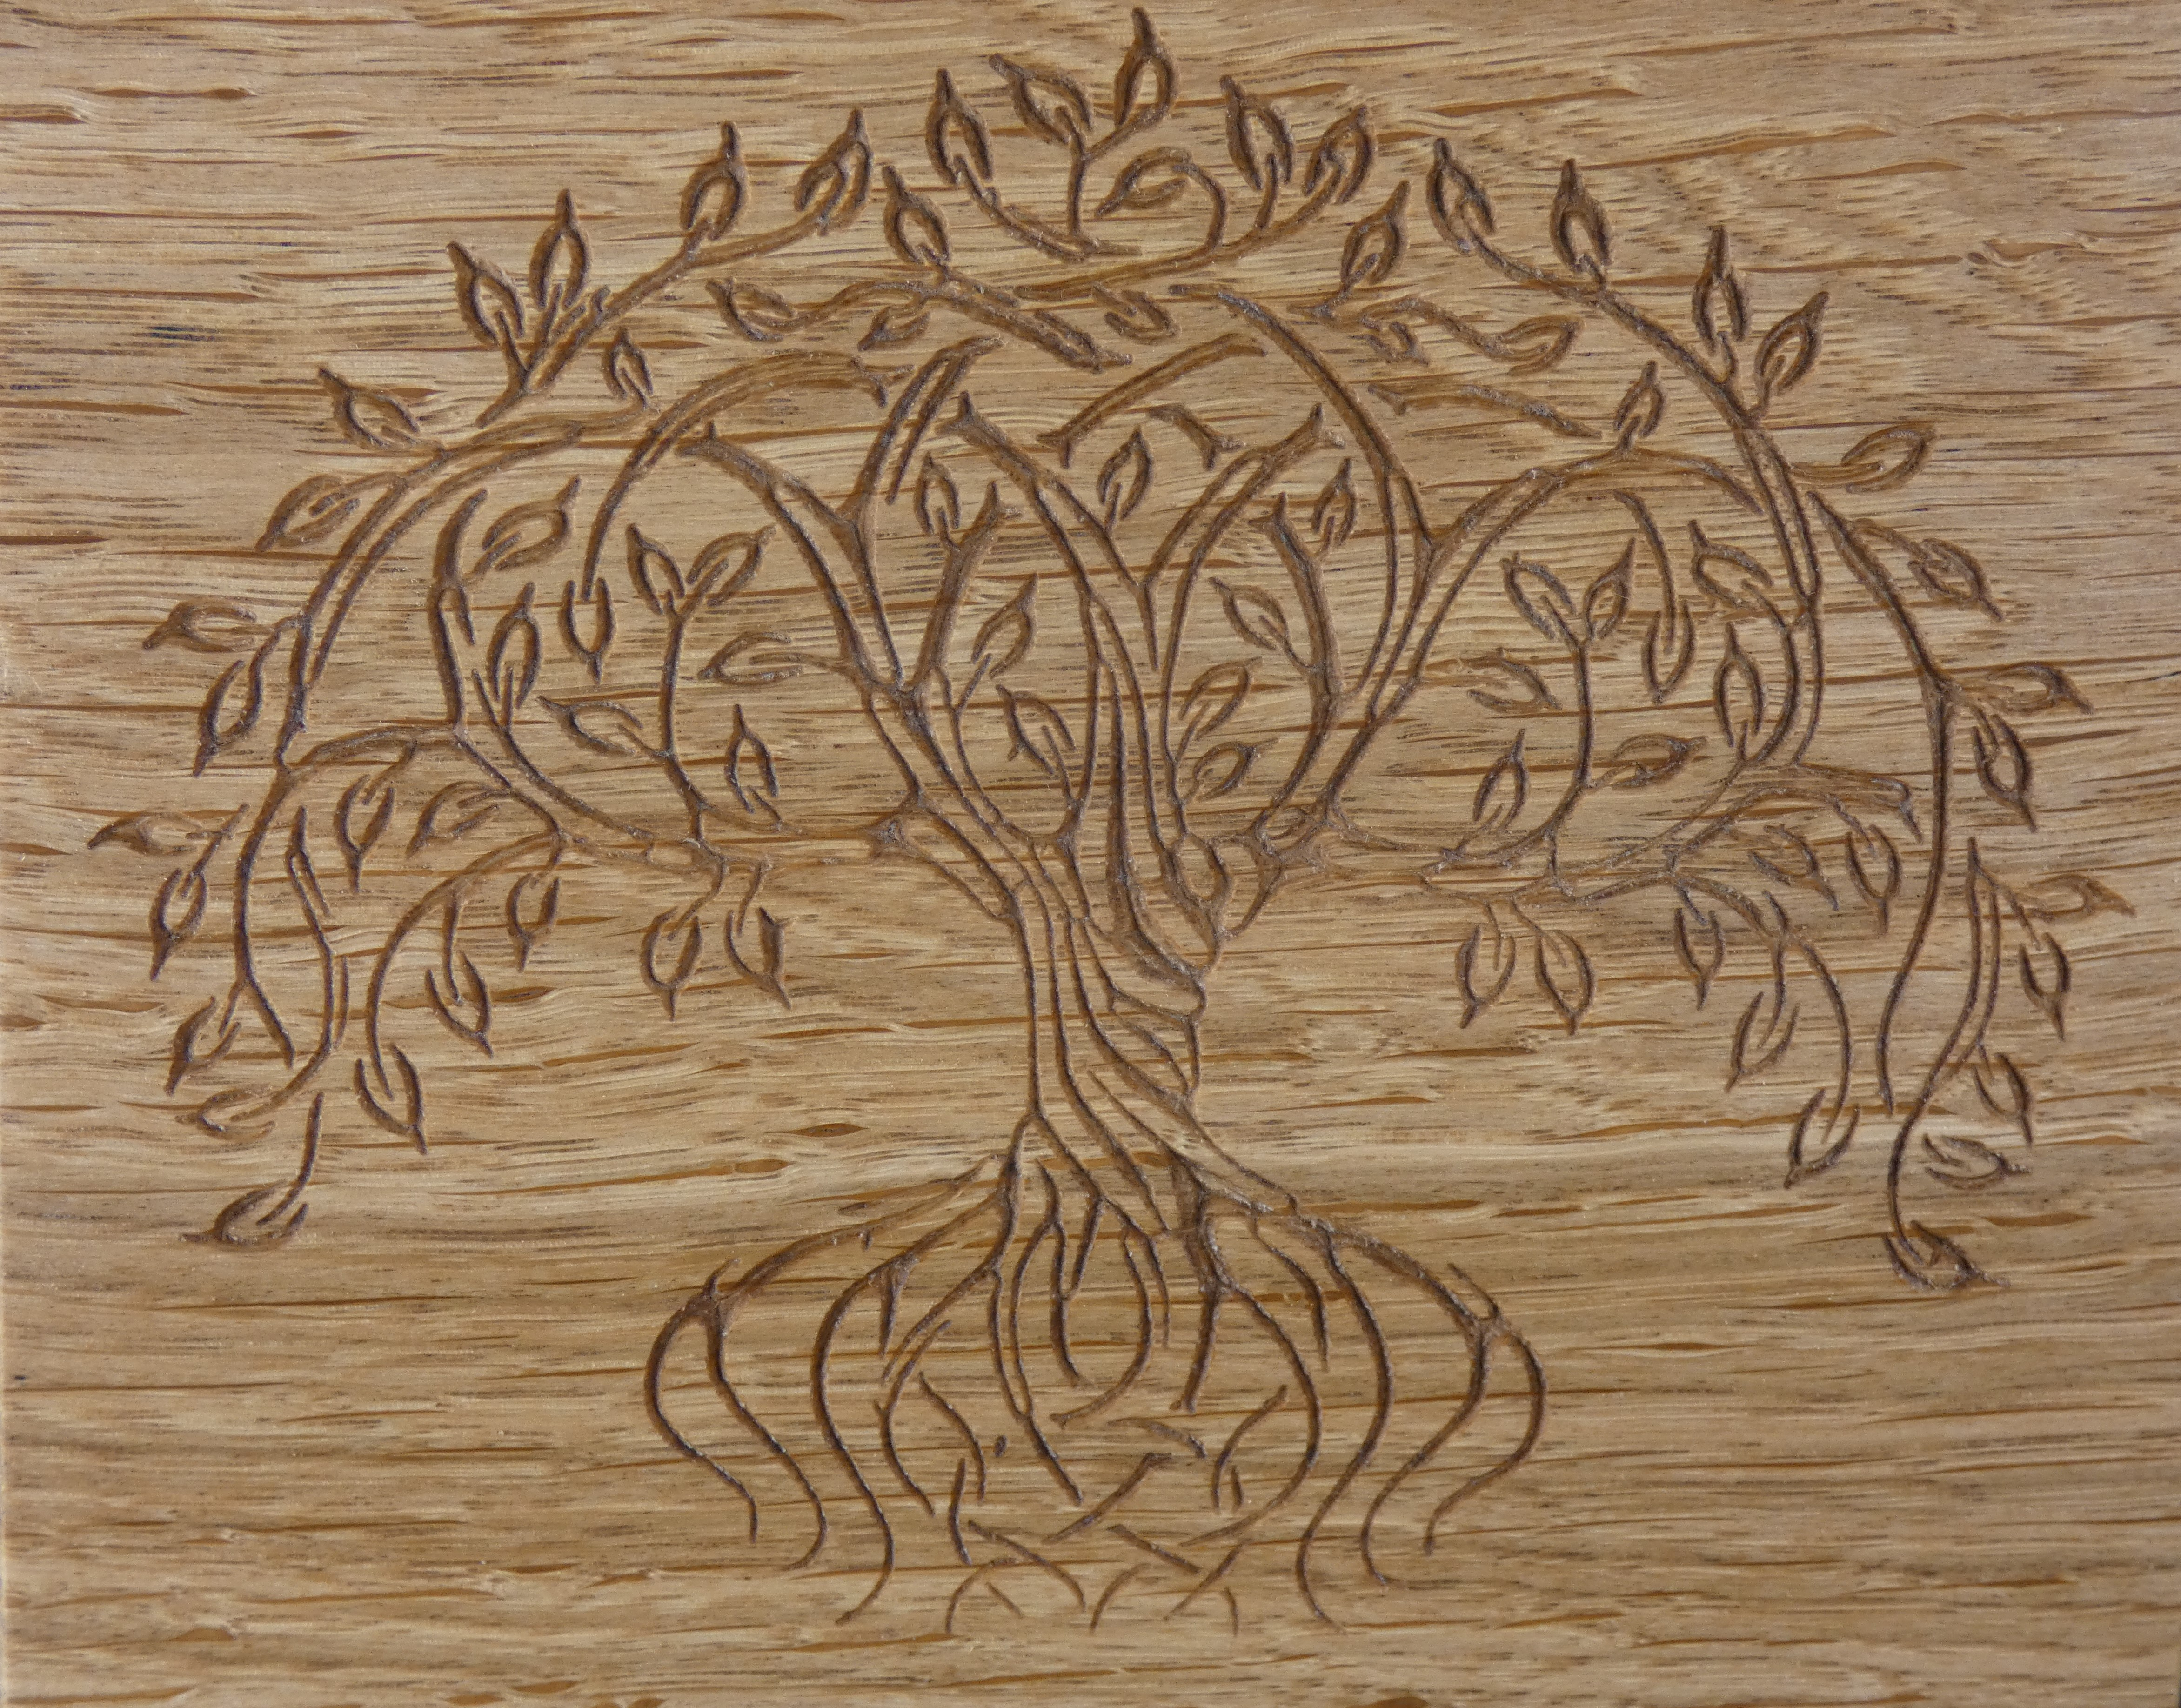 Tree Of Life Wood Wall Art – The Grain Attraction Pertaining To Fashionable Tree Of Life Wall Decor (Gallery 7 of 20)